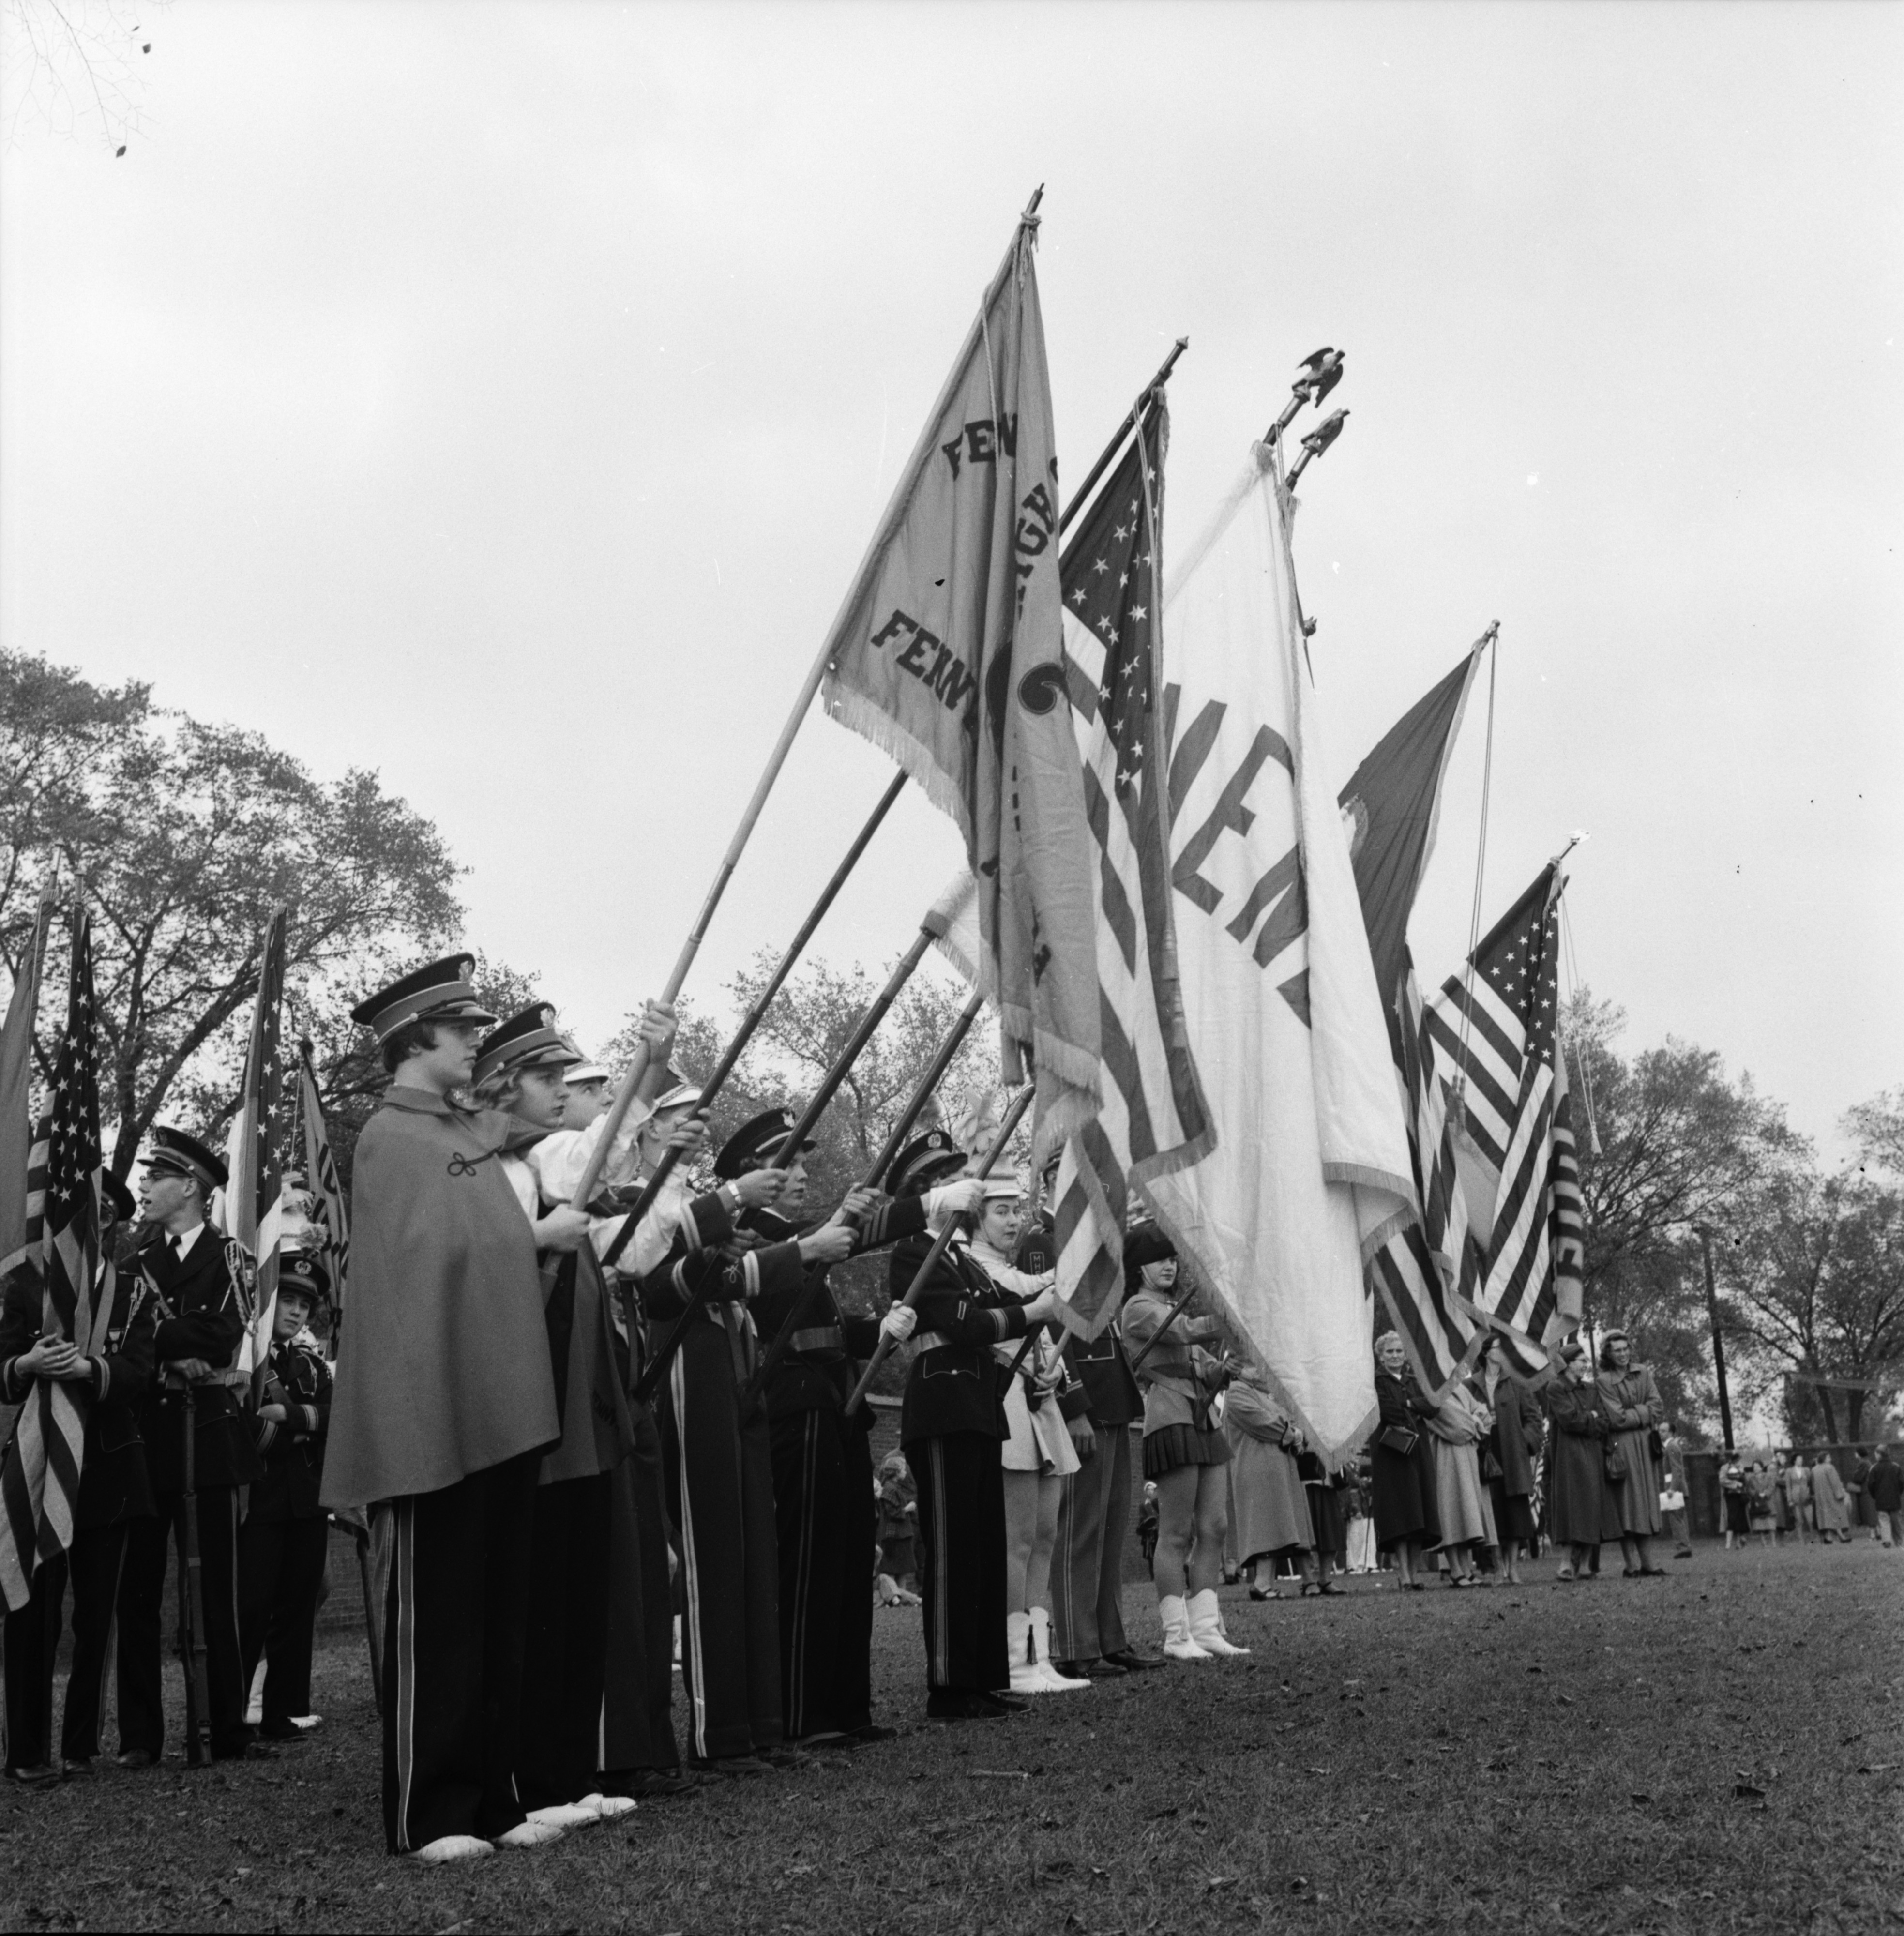 High School Marching Band Performs At University of Michigan Football Game, October 1954 image